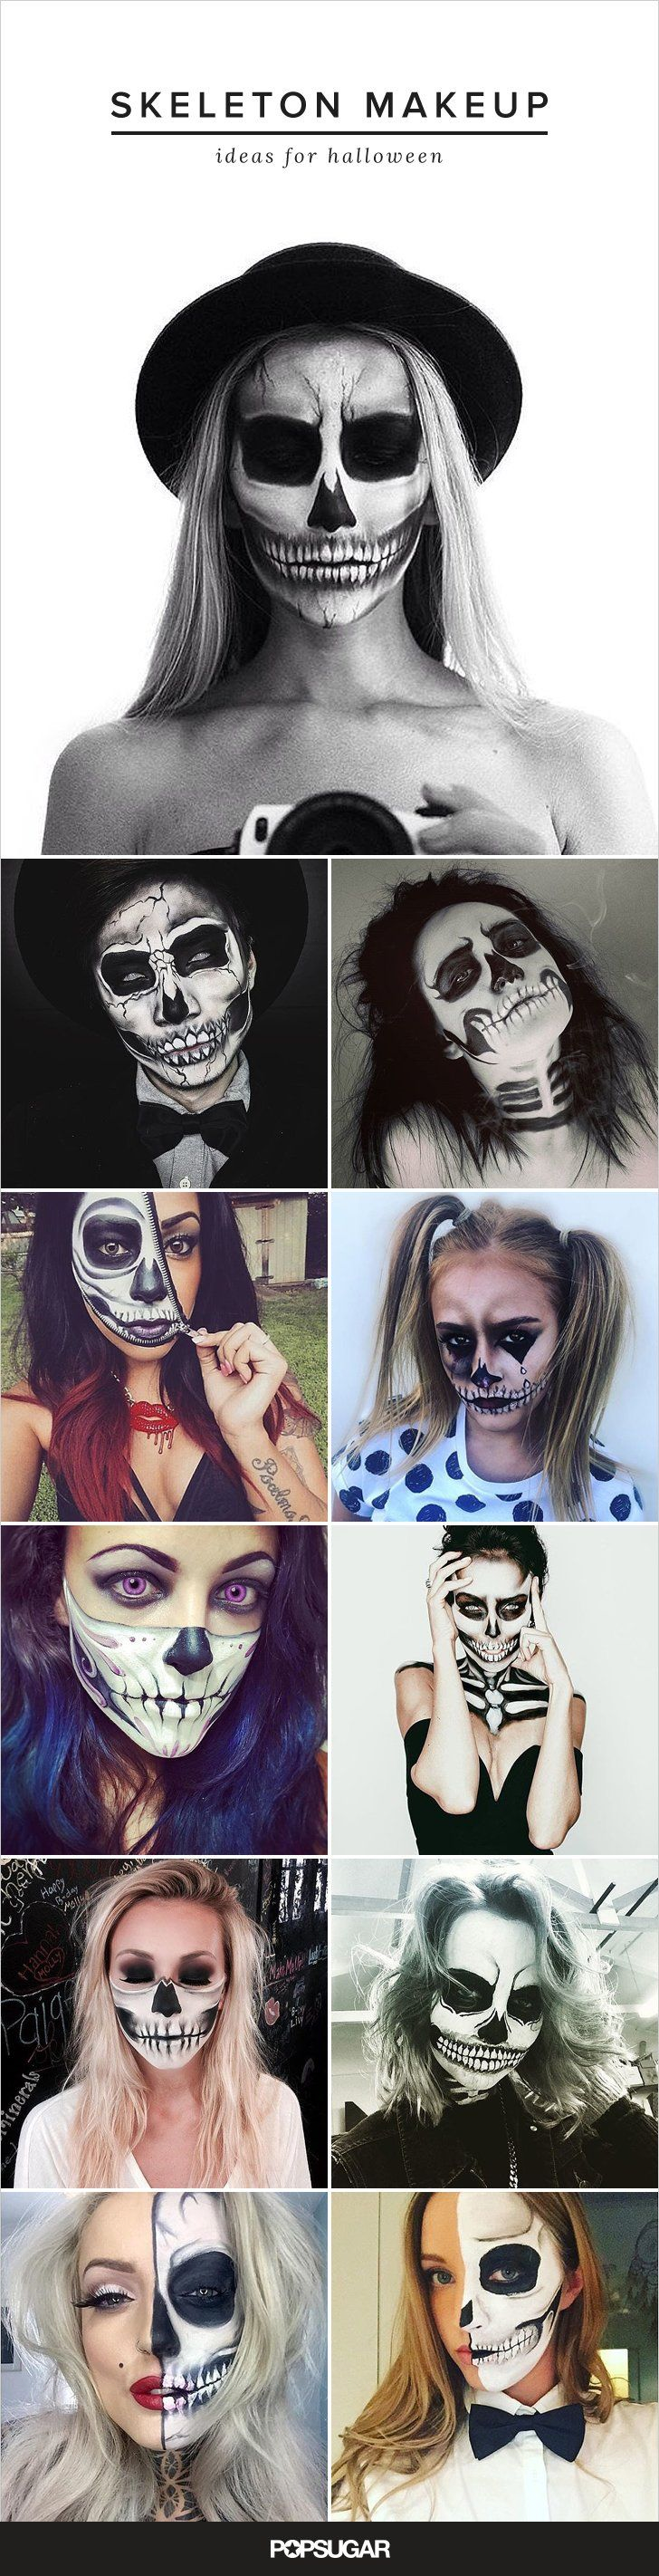 Pin for Later: 62 Terrifyingly Cool Skeleton Makeup Ideas to Try For Halloween P...